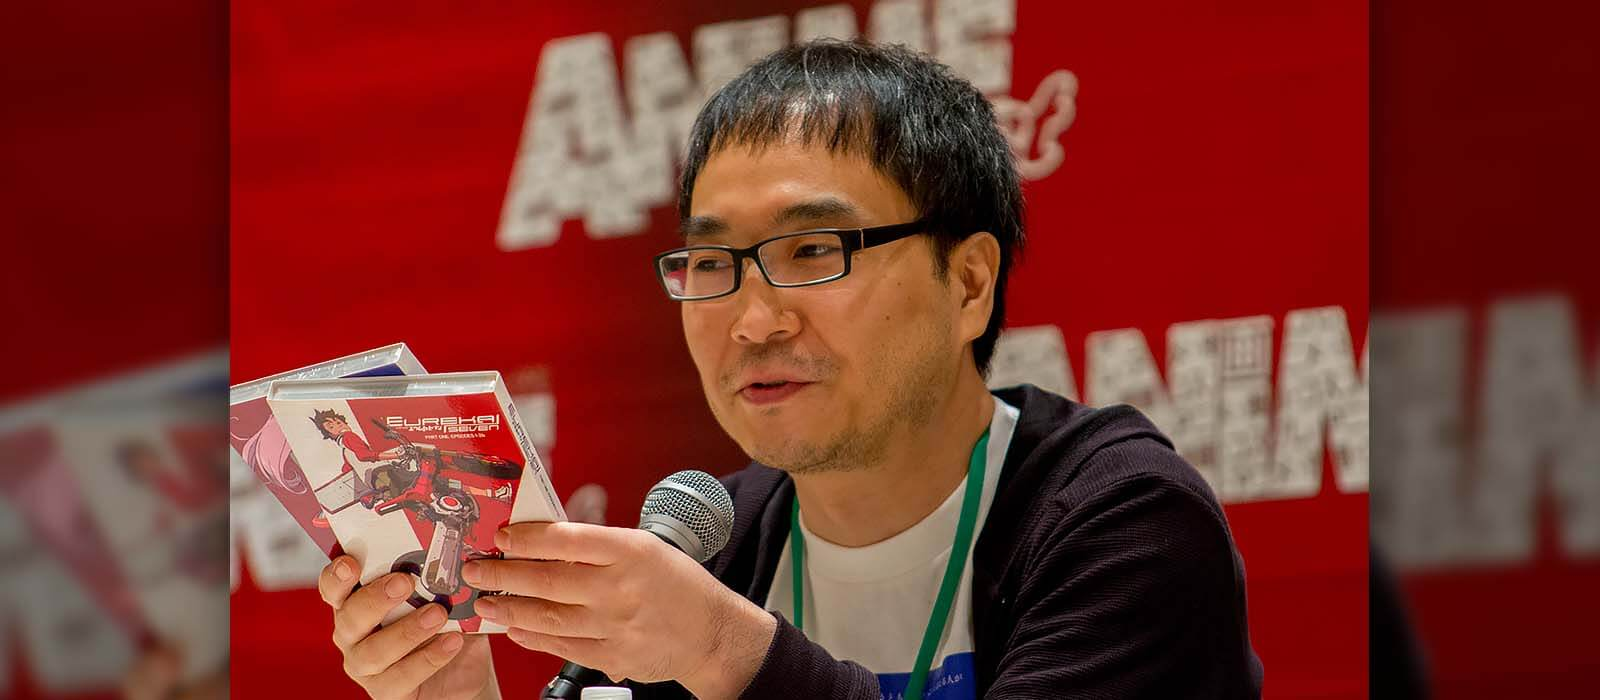 Dai Sato At AnimeFest 2017 in Dallas, Texas